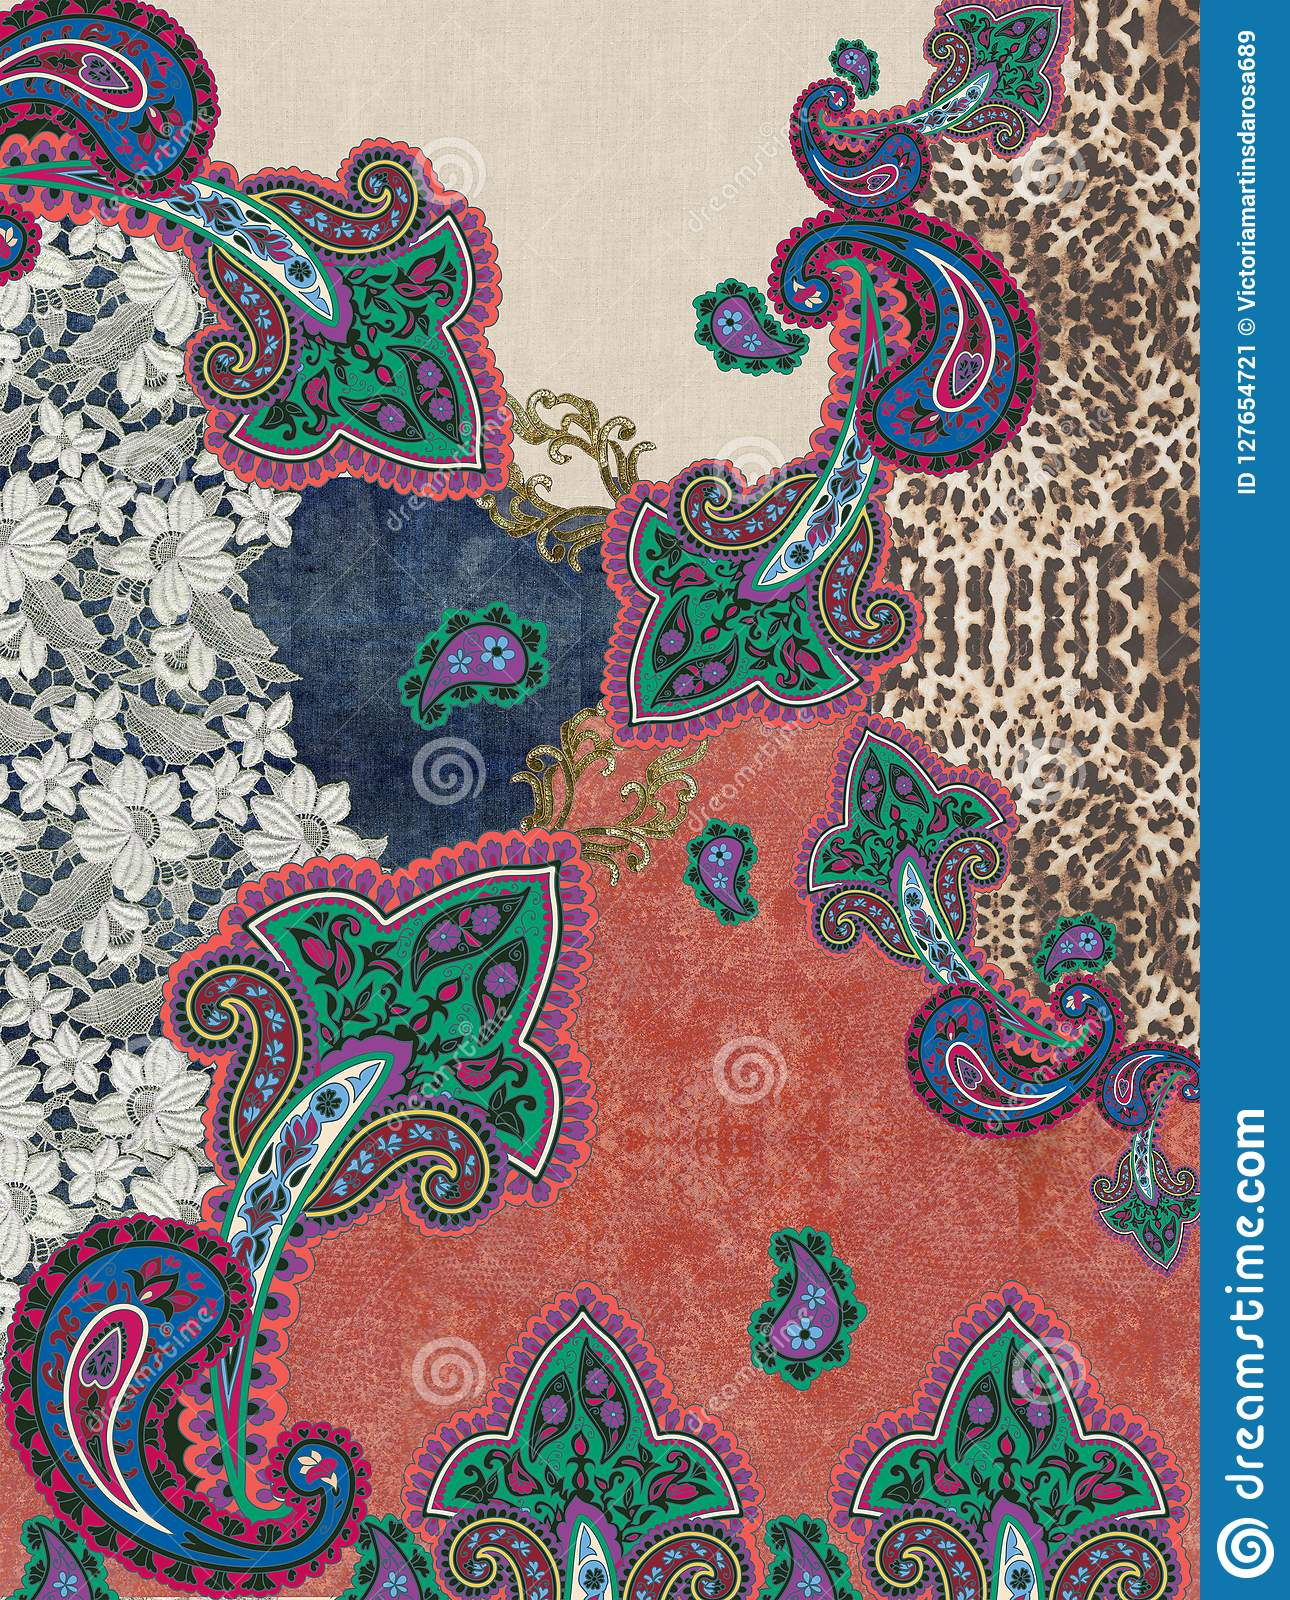 Paisley embroidery colors texture design